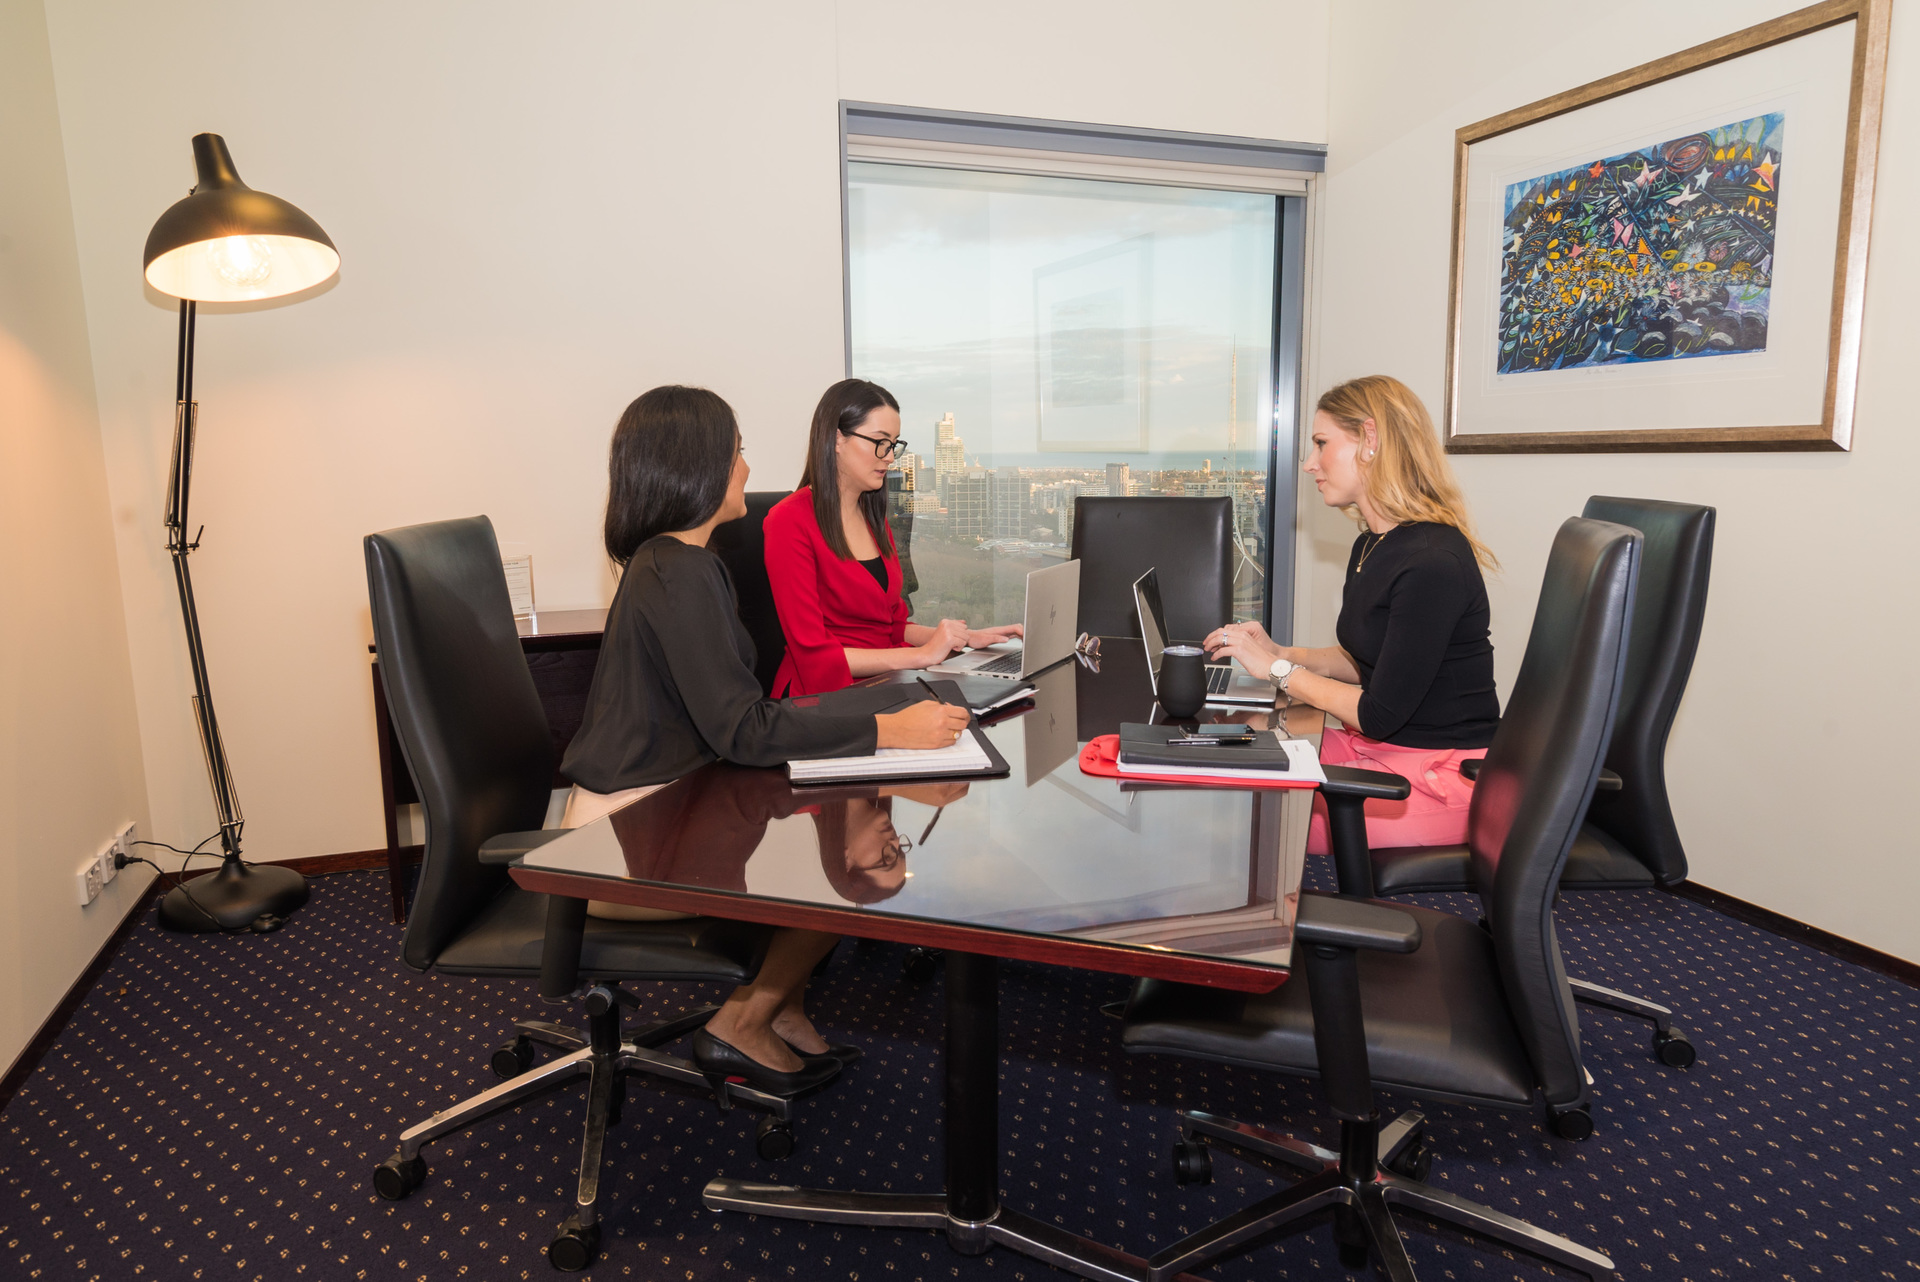 Impressive 2-person executive office based in the heart of Adelaide's CBD